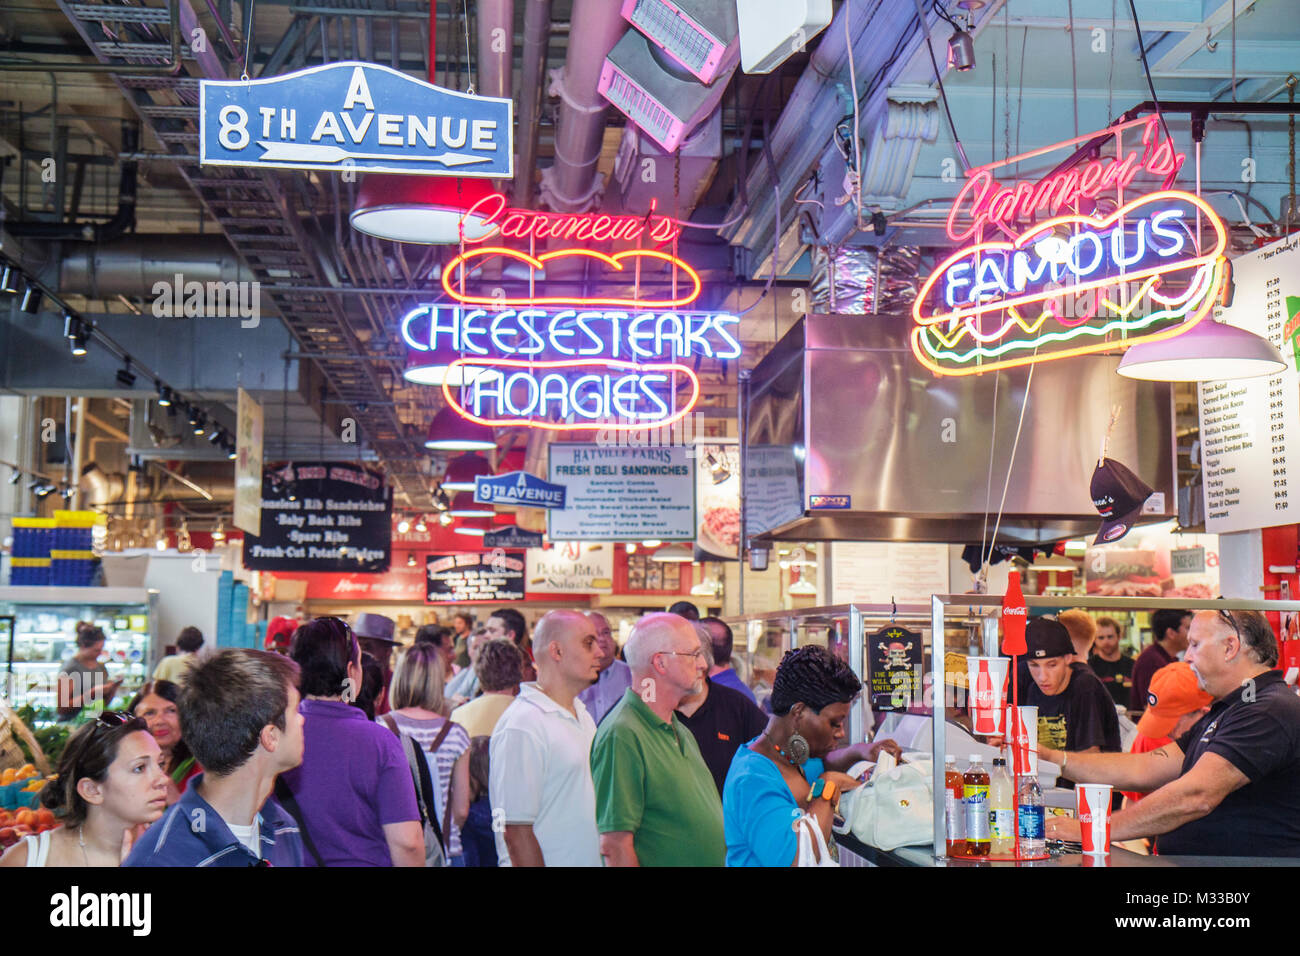 Philadelphia Pennsylvania Reading Terminal Market Center City historic farmers market local food merchant stall - Stock Image